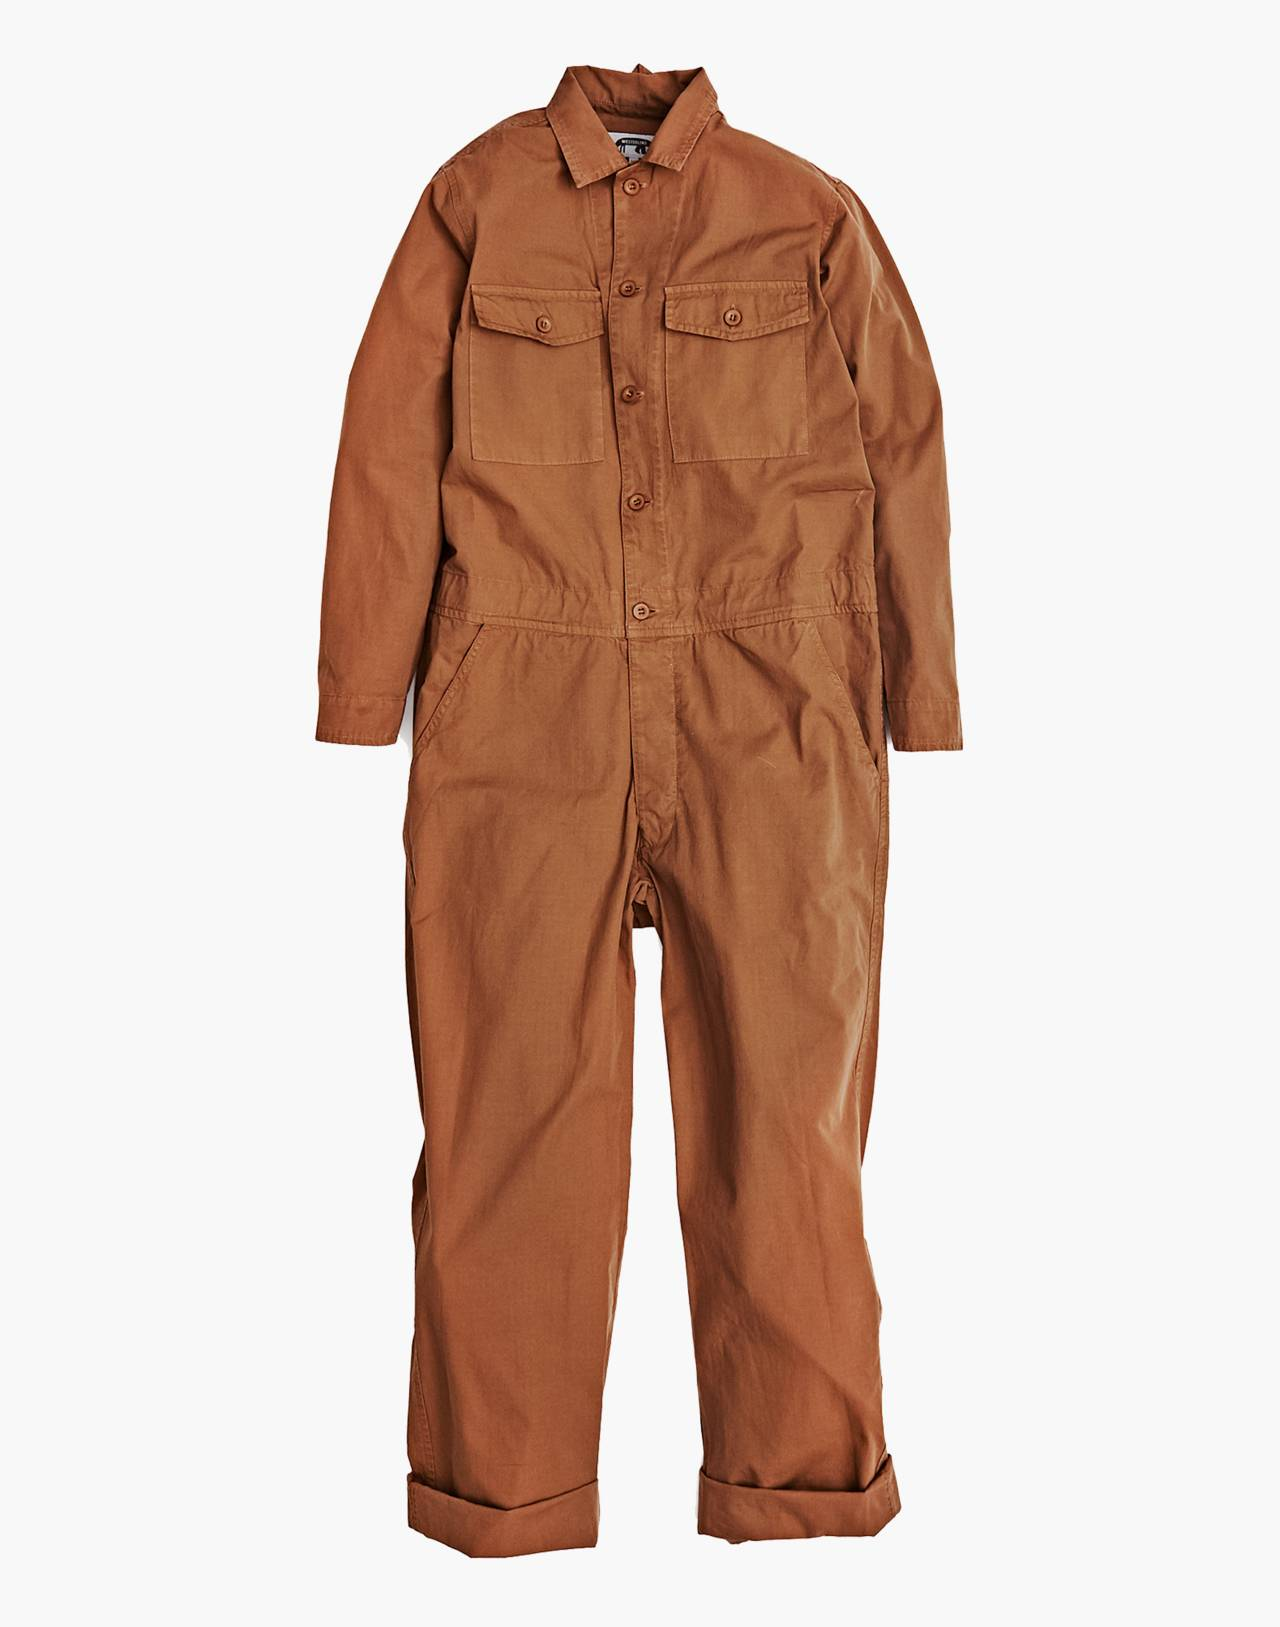 Westerlind Climbing Jumpsuit in brown image 2